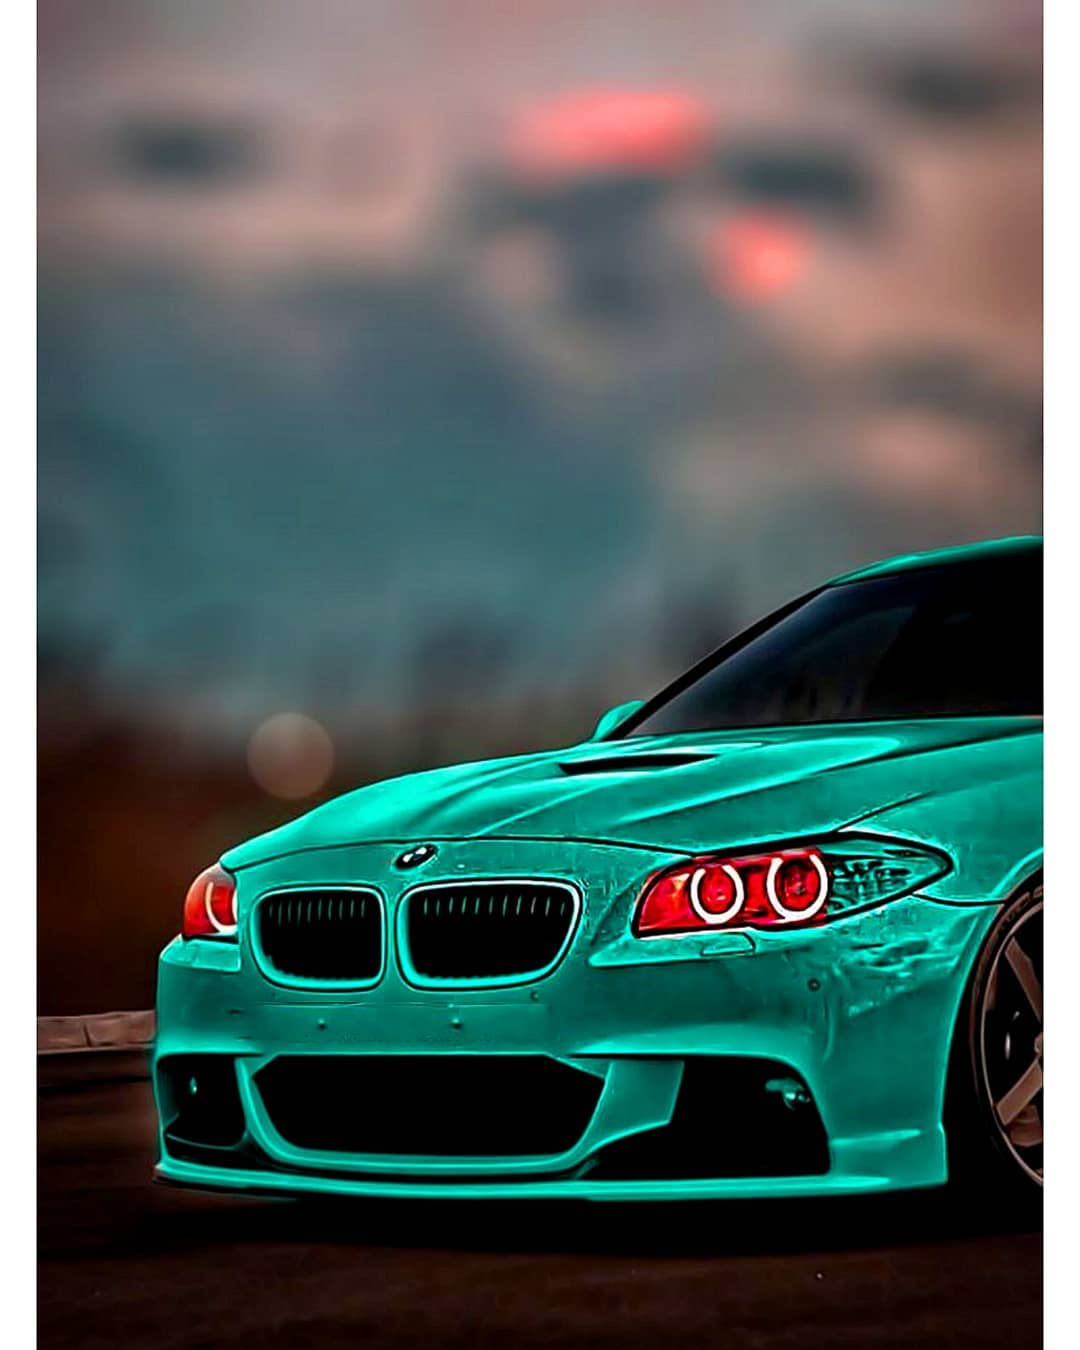 Car Background Download Full Hd For Photo Editing 2020